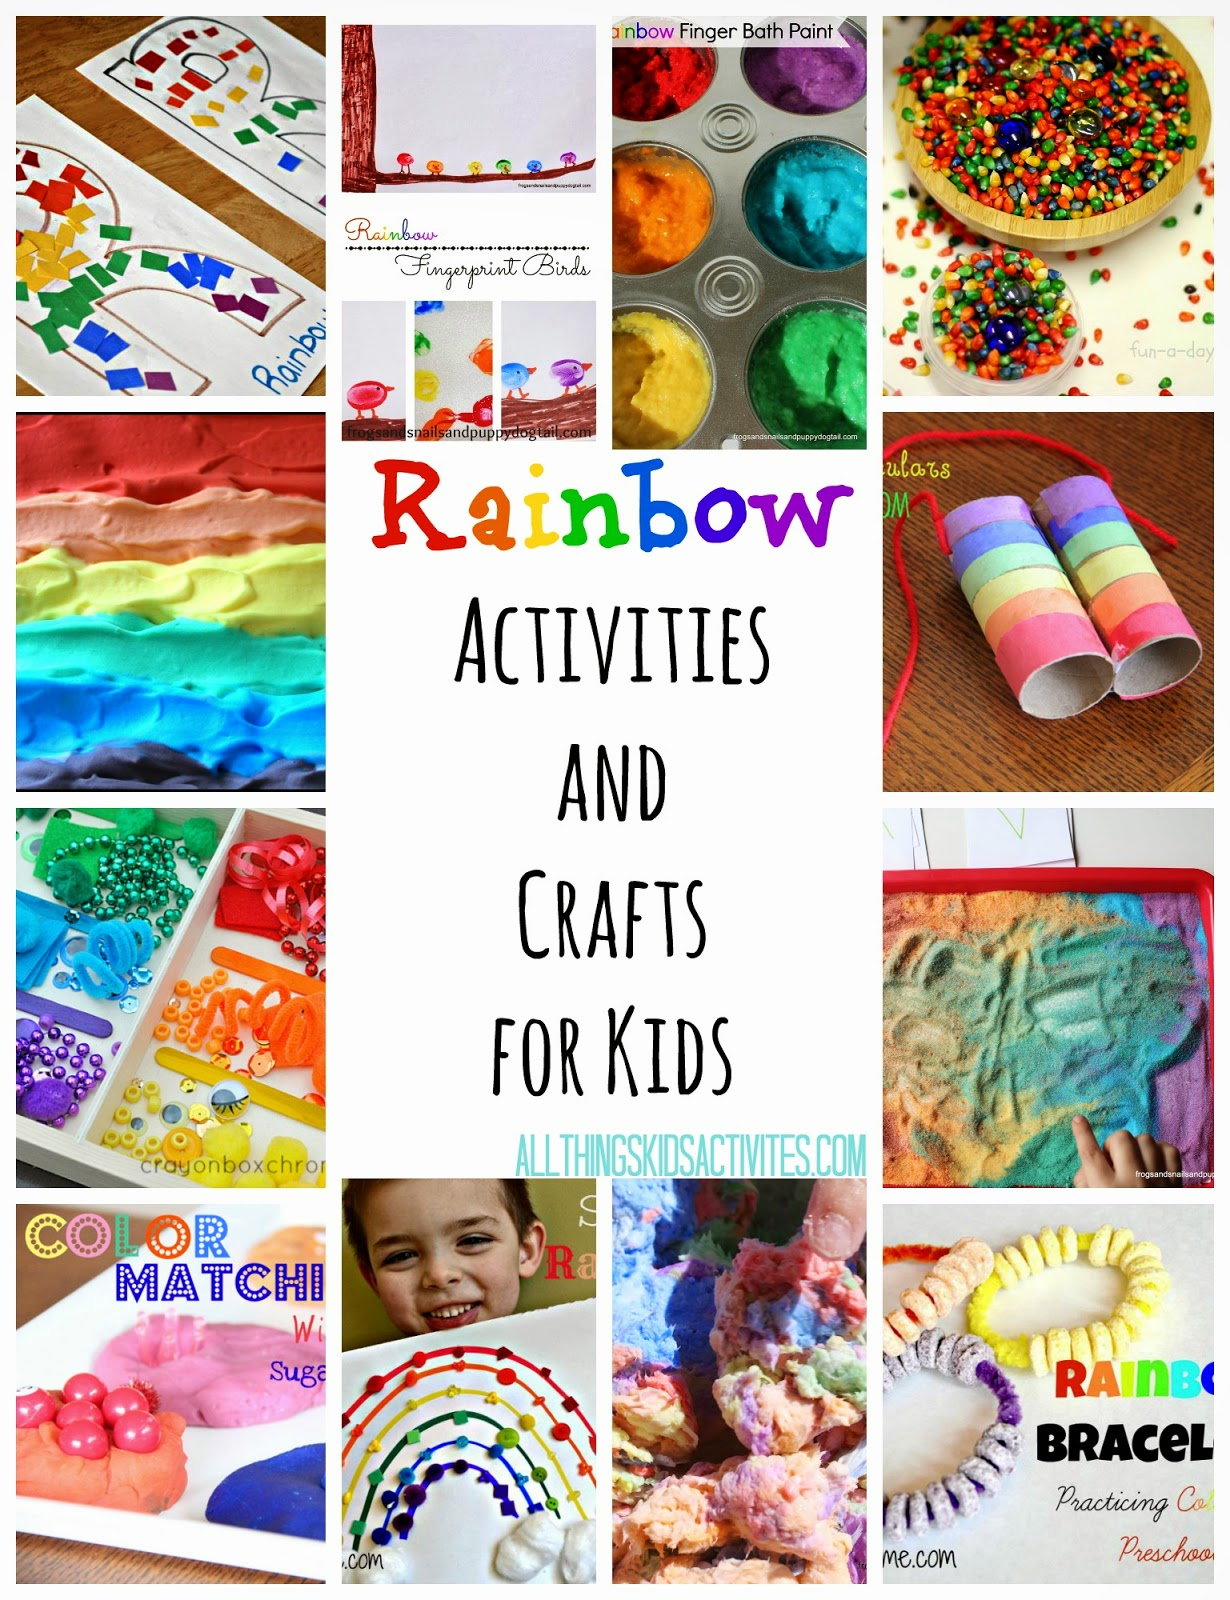 Rainbow Activities and Crafts for Kids